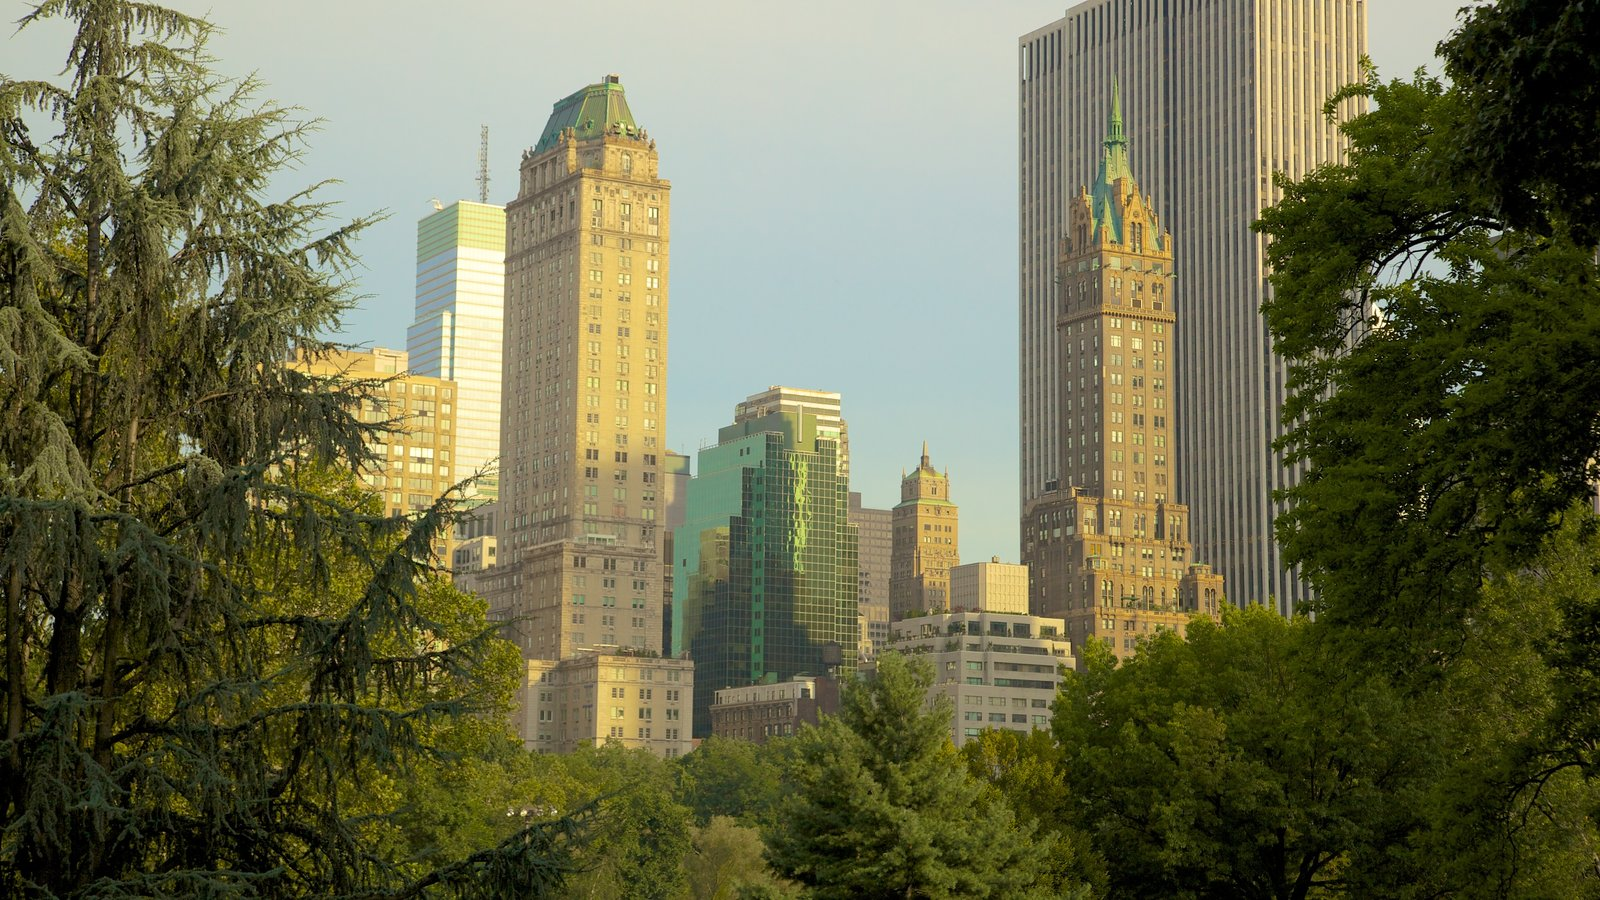 Central Park showing skyline, a garden and a city